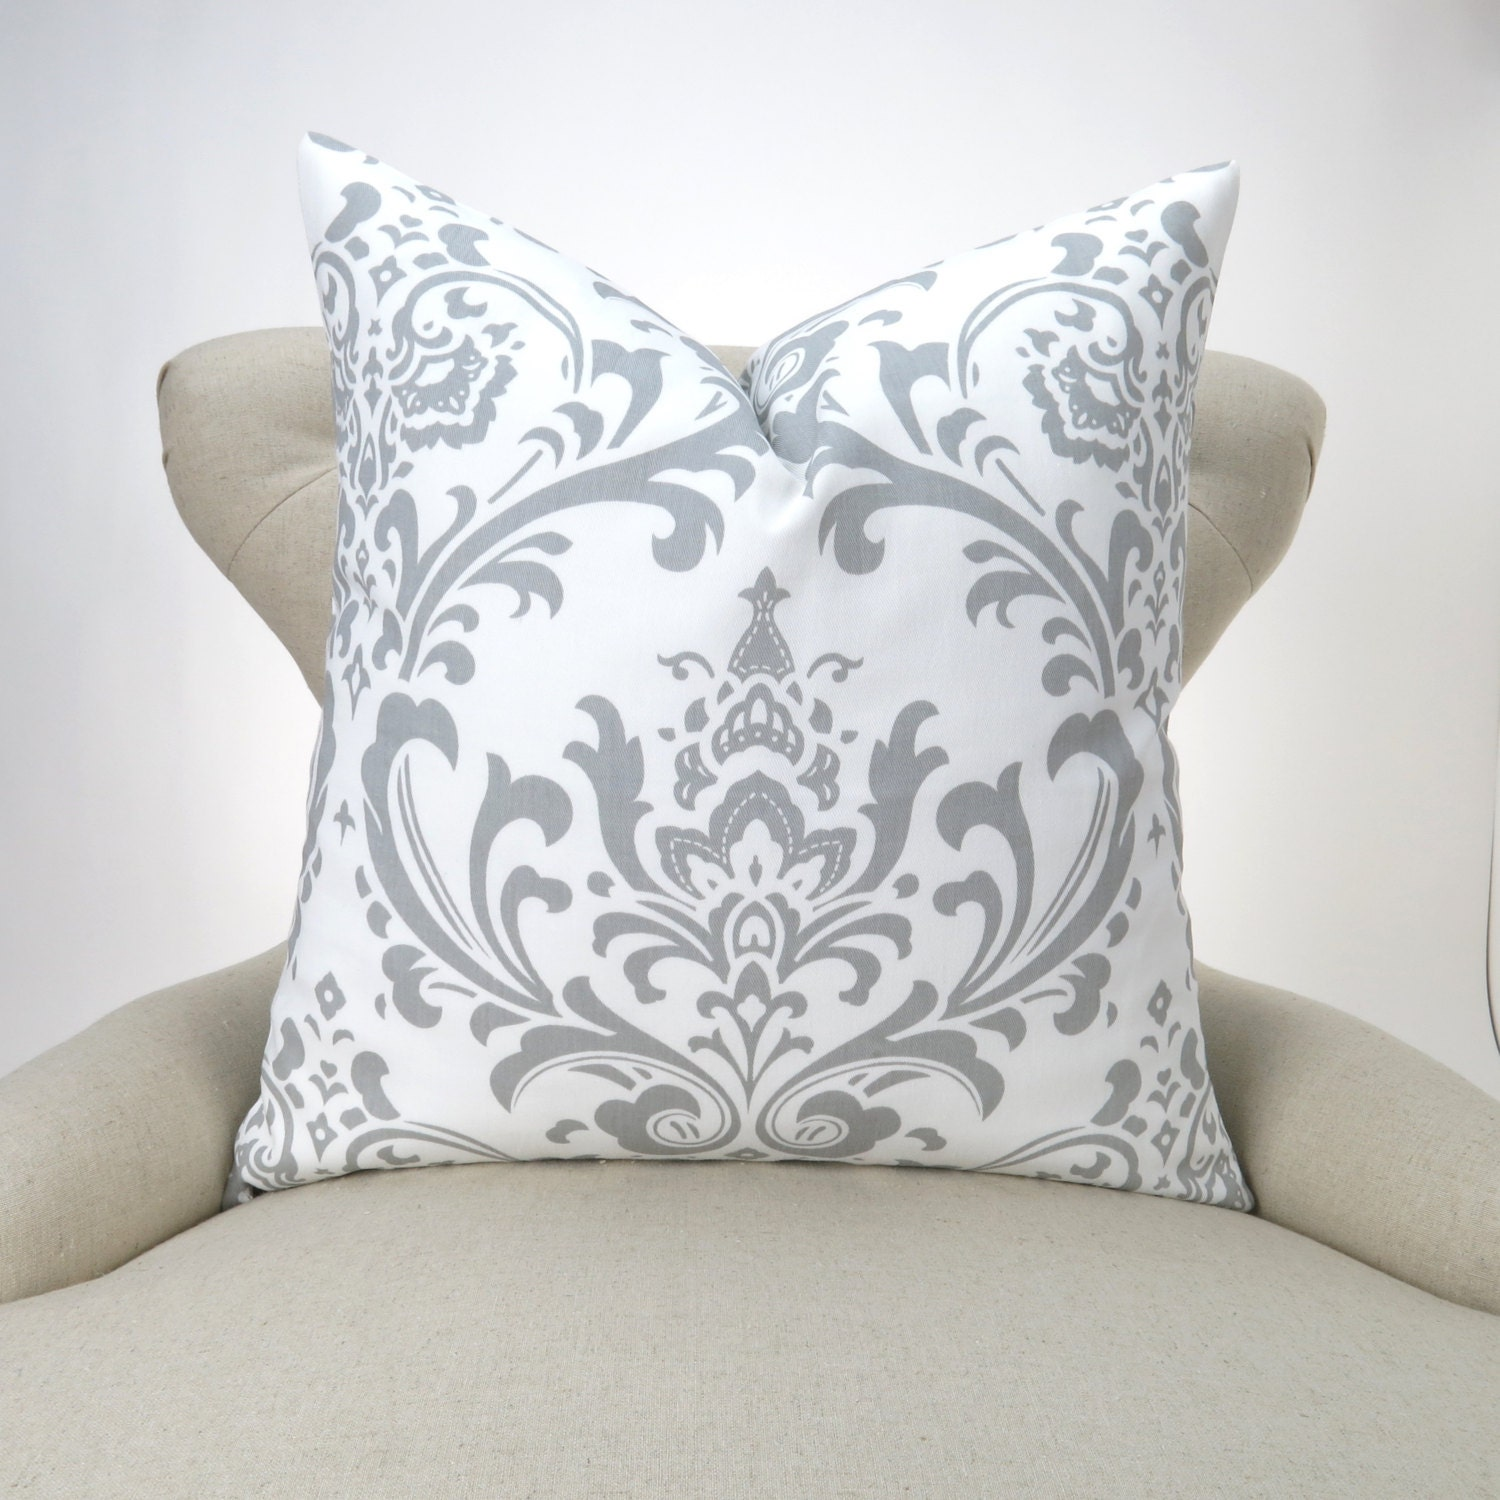 Throw Pillow Case Size : Throw Pillow Cover Gray Damsk MANY SIZES White gray